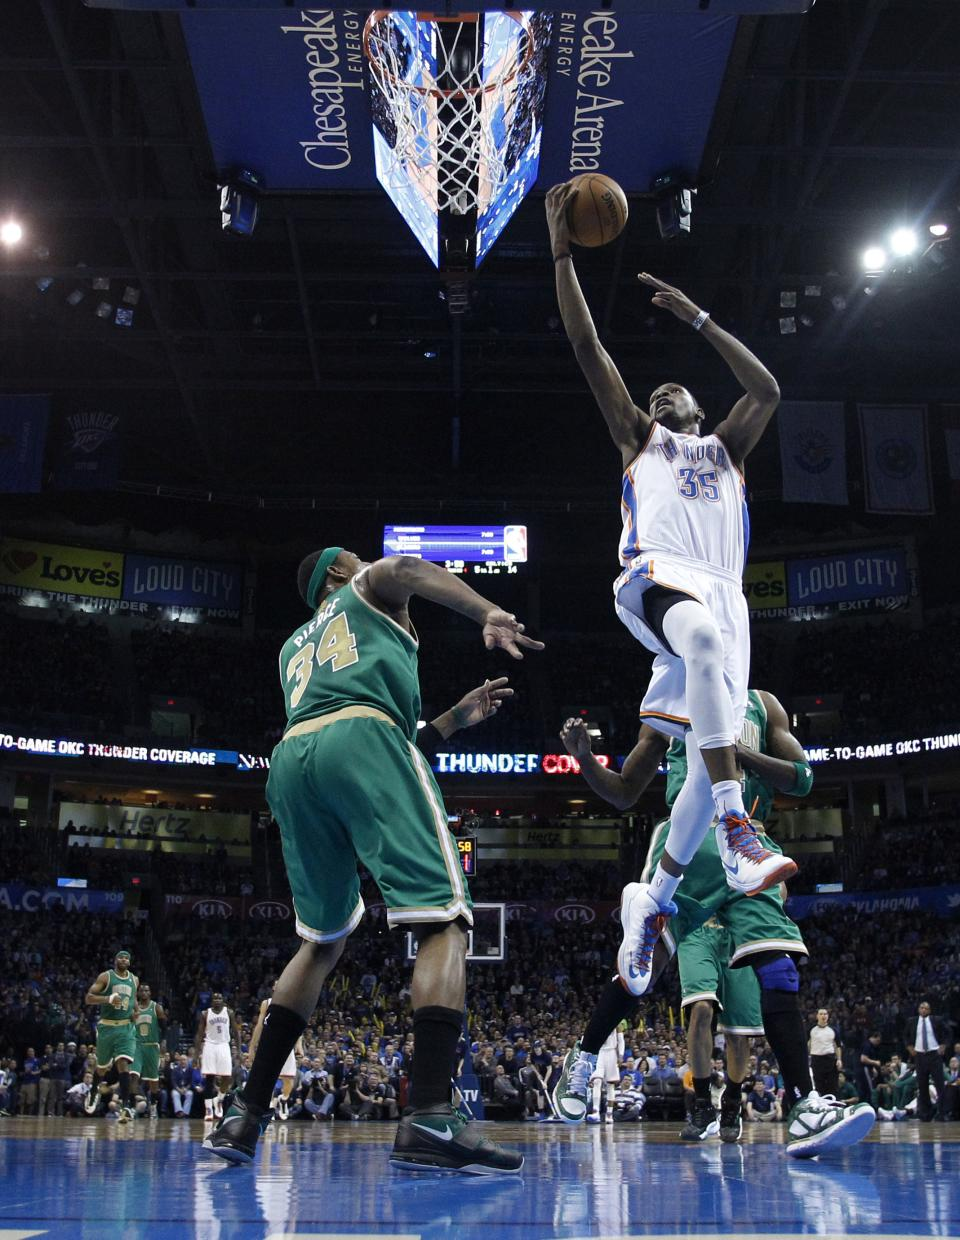 Oklahoma City Thunder forward Kevin Durant (35) shoots in front of Boston Celtics forward Paul Pierce (34) in the first quarter of an NBA basketball game in Oklahoma City, Sunday, March 10, 2013. (AP Photo/Sue Ogrocki)